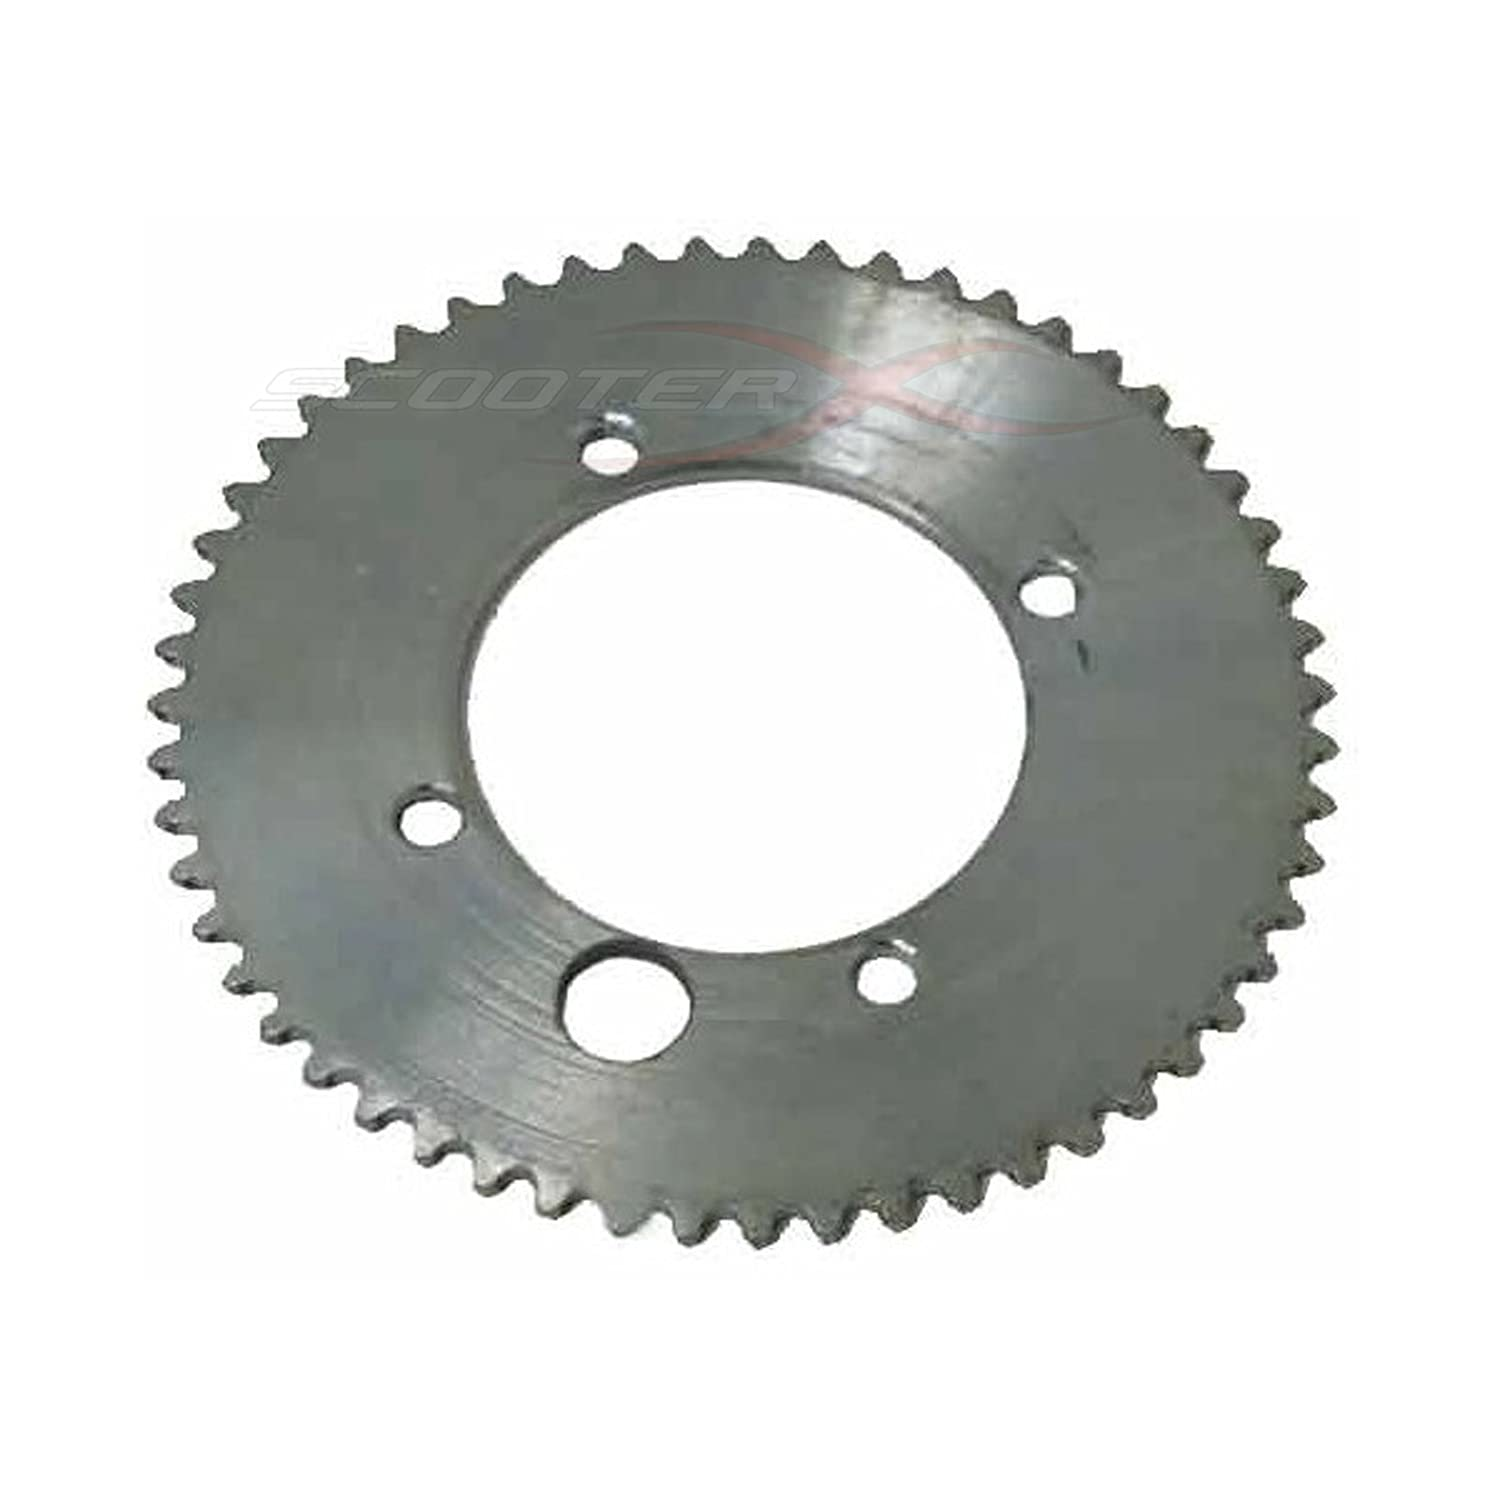 50 Caliber Racing 55 Tooth 45mm BCD 25H Chain Sprocket for Gas Scooter 4506 Gas Skateboard Pocket Bike Mini Chopper